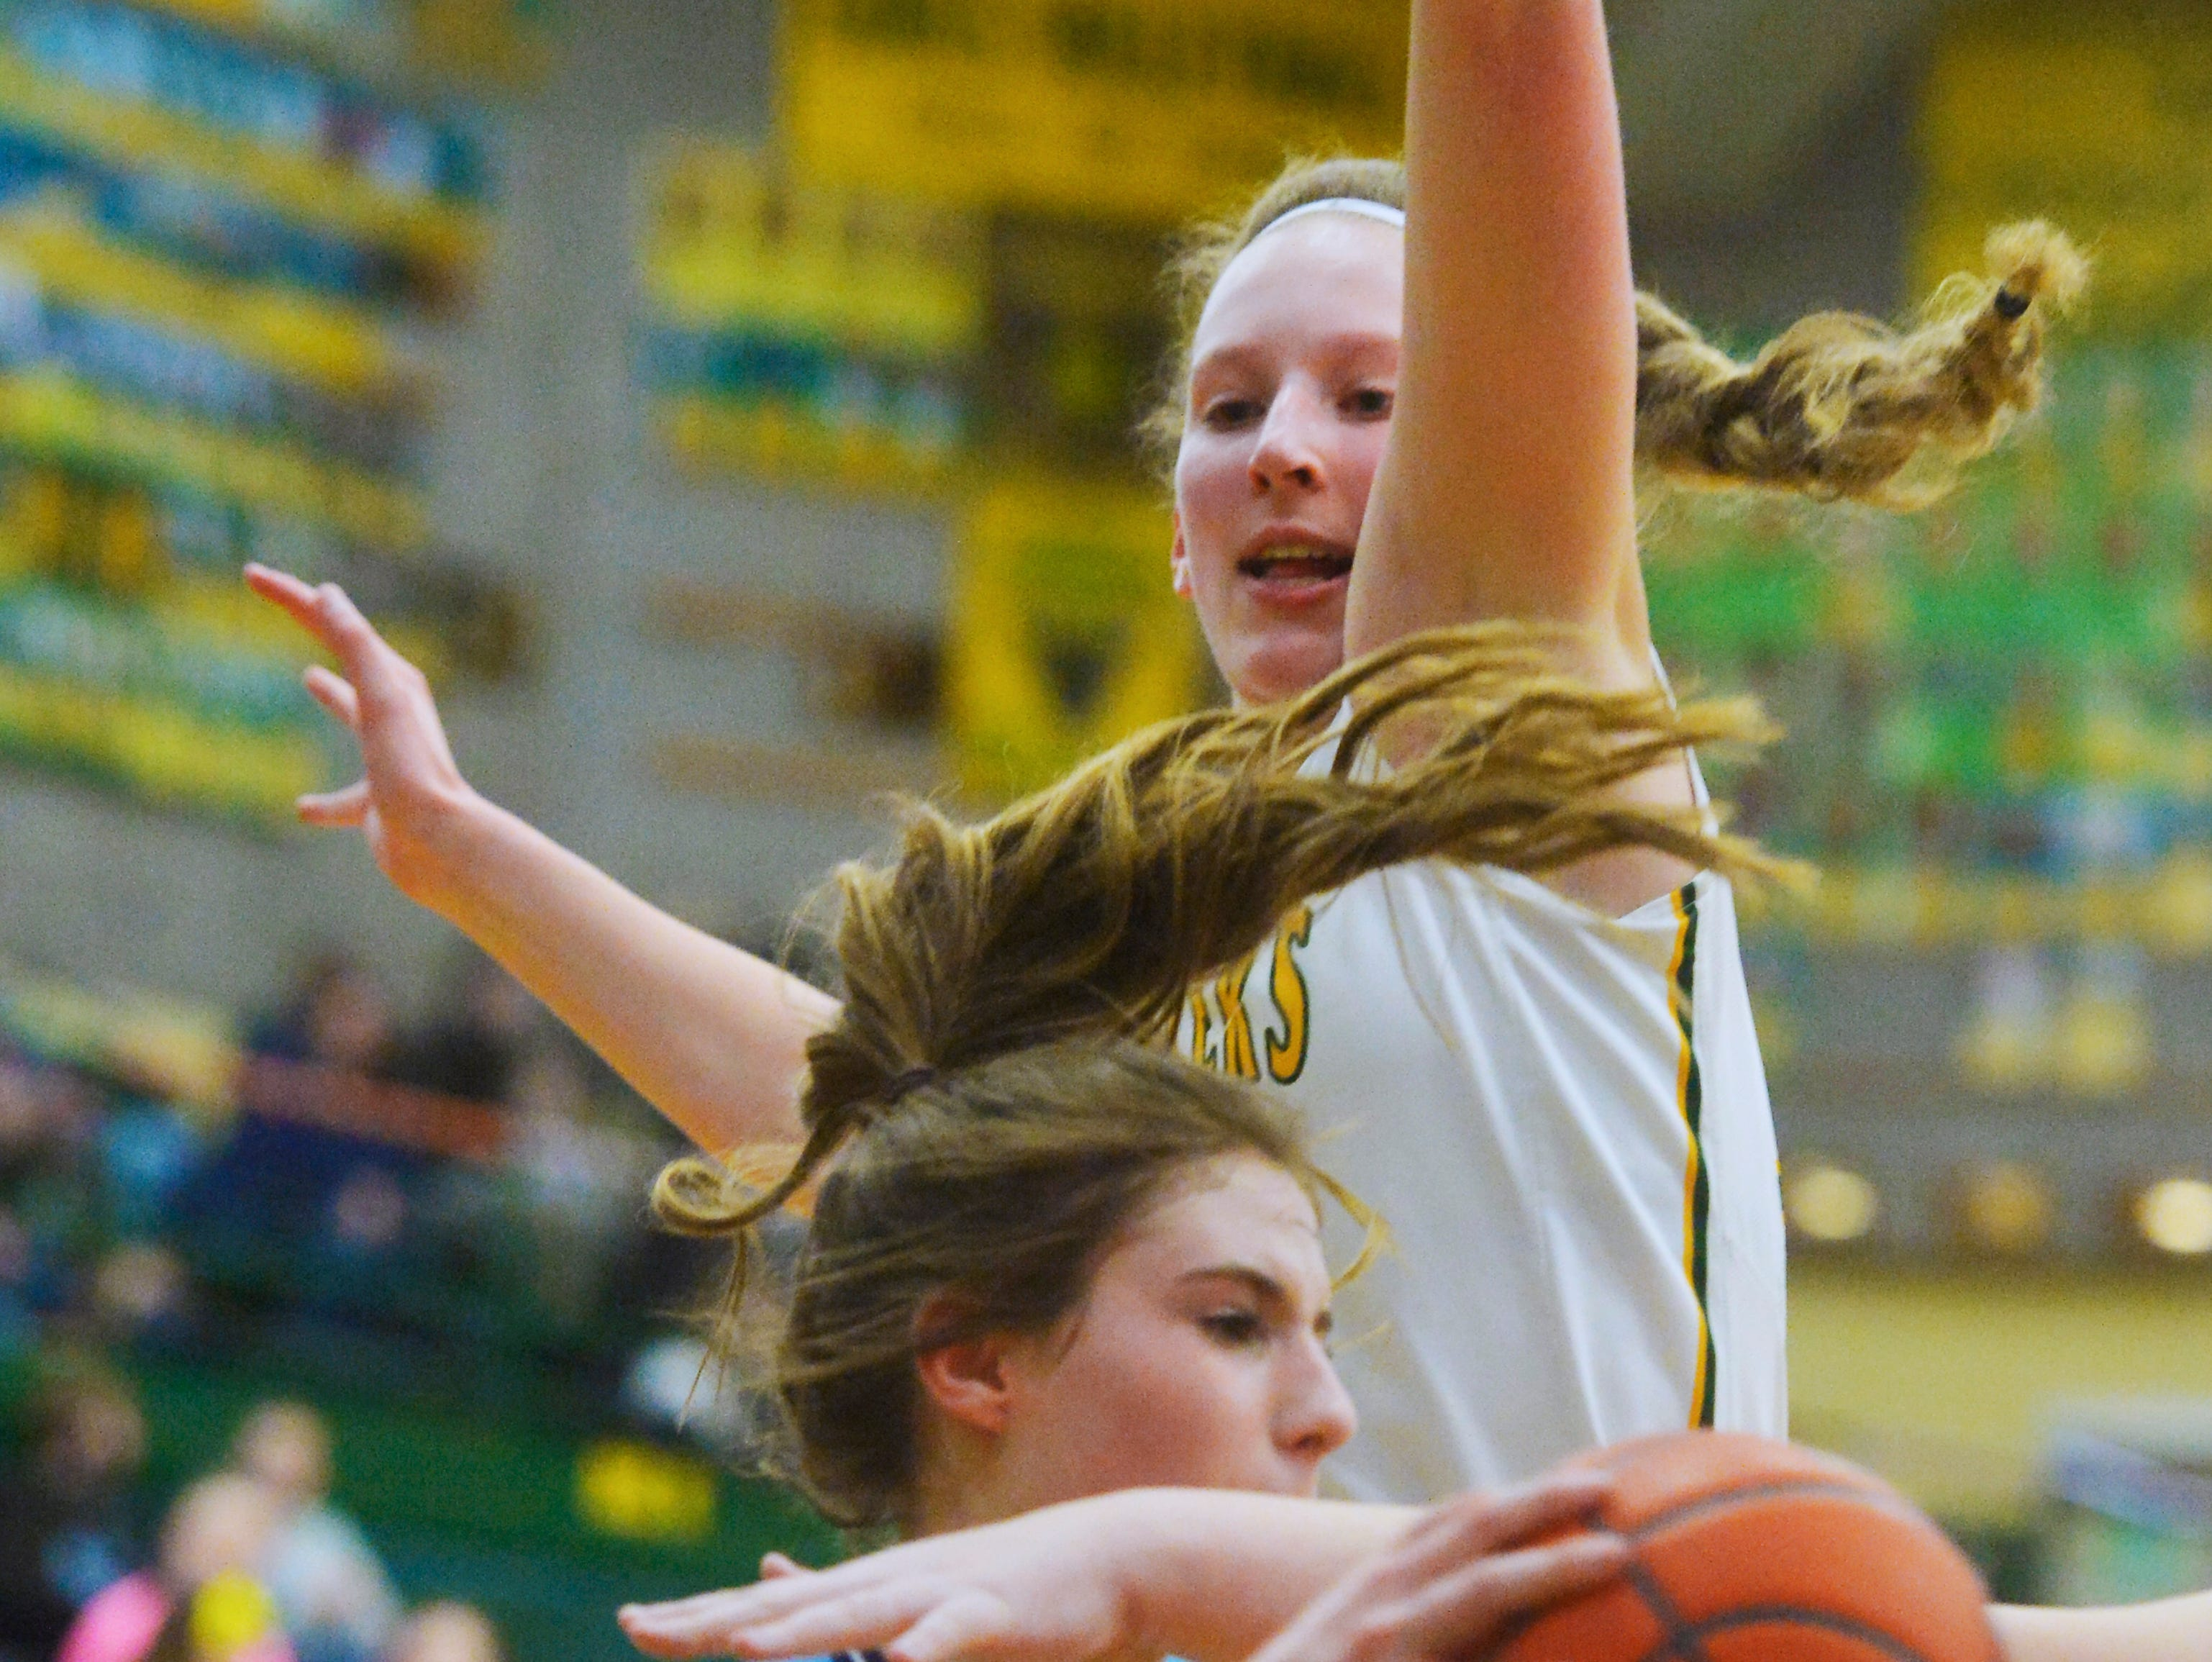 CMR's Allie Olsen defends along the baseline during the girls crosstown basketball game against Great Falls High in the CMR Fieldhouse, Thursday night.